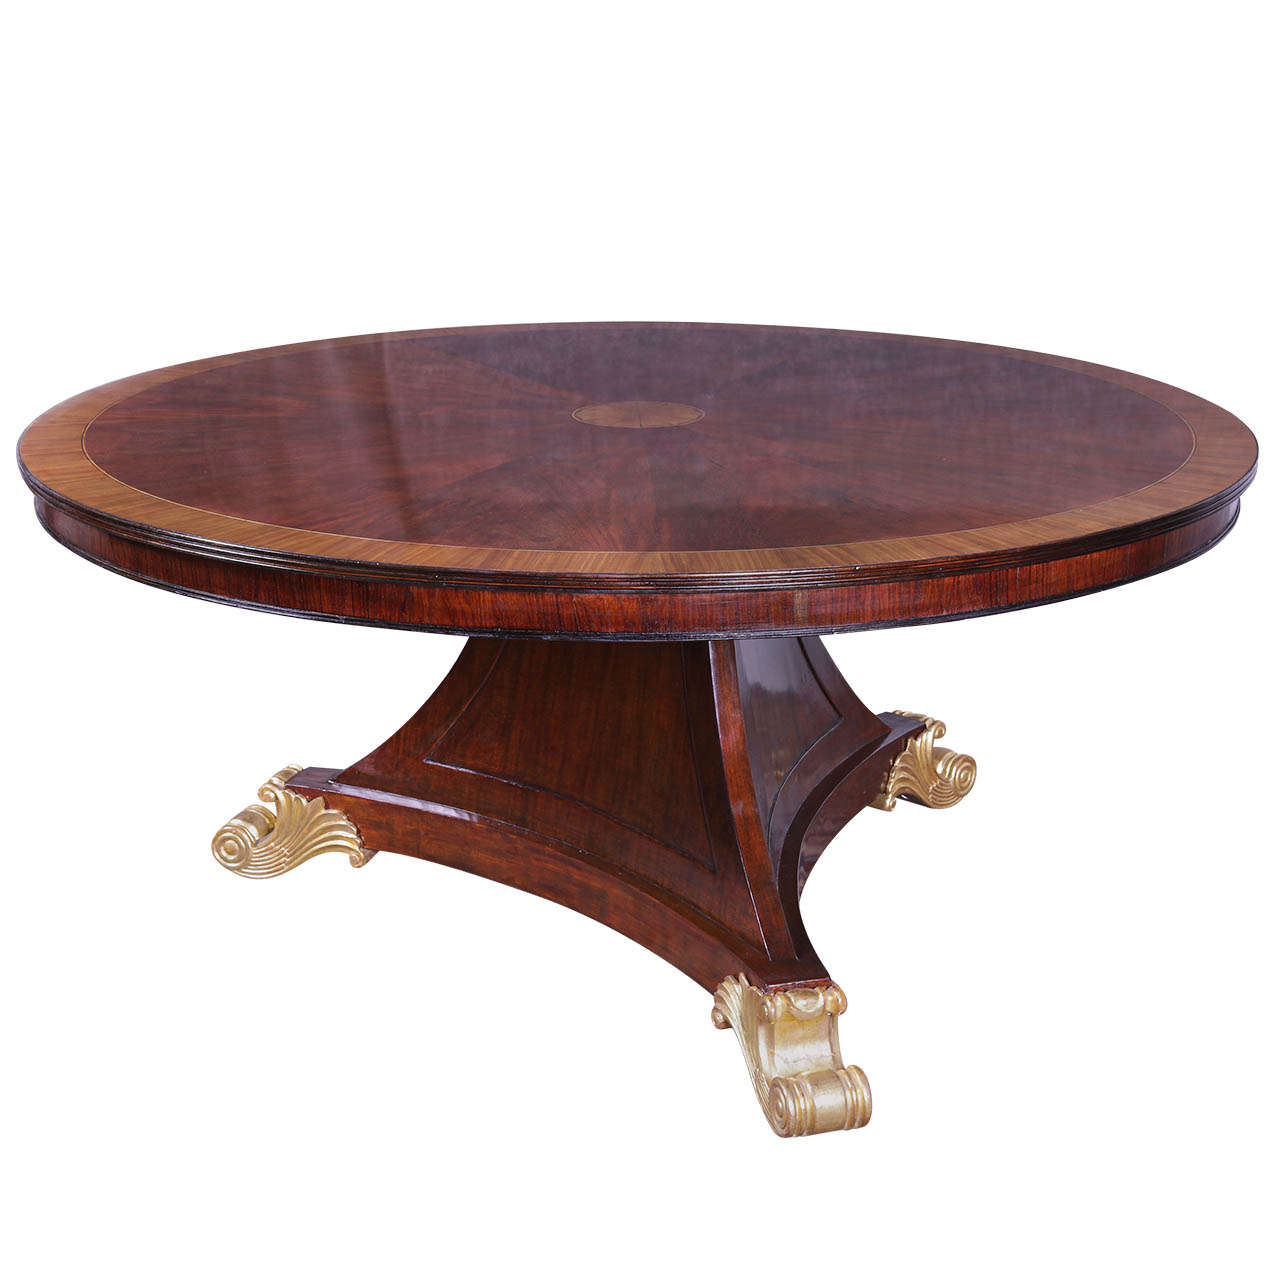 19th century english dining table at 1stdibs for England table